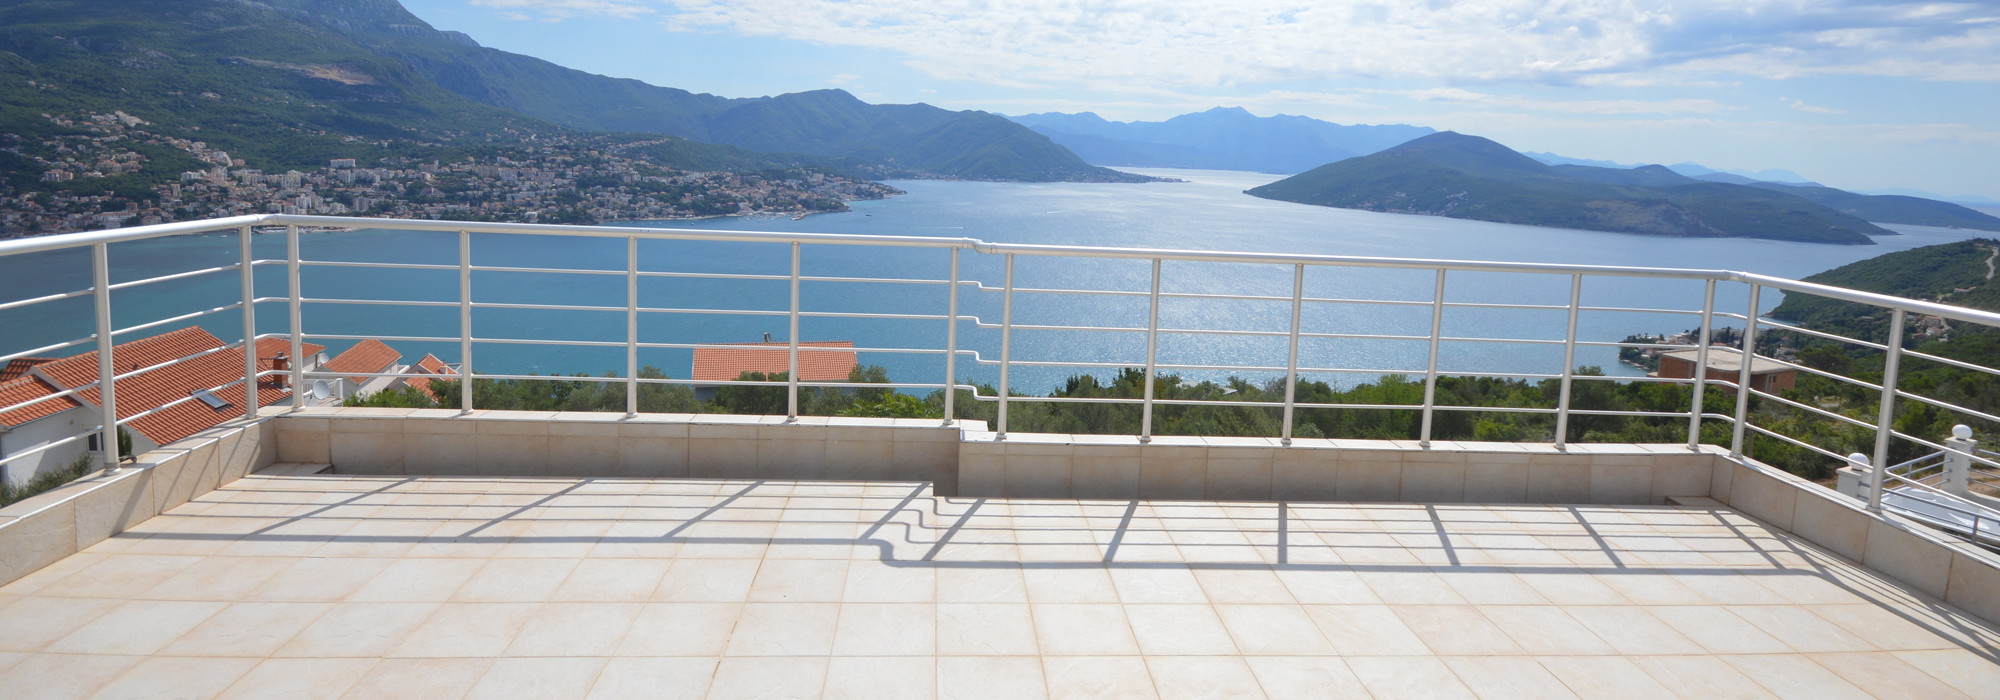 Two luxury Villas in Zvinje, Herceg Novi